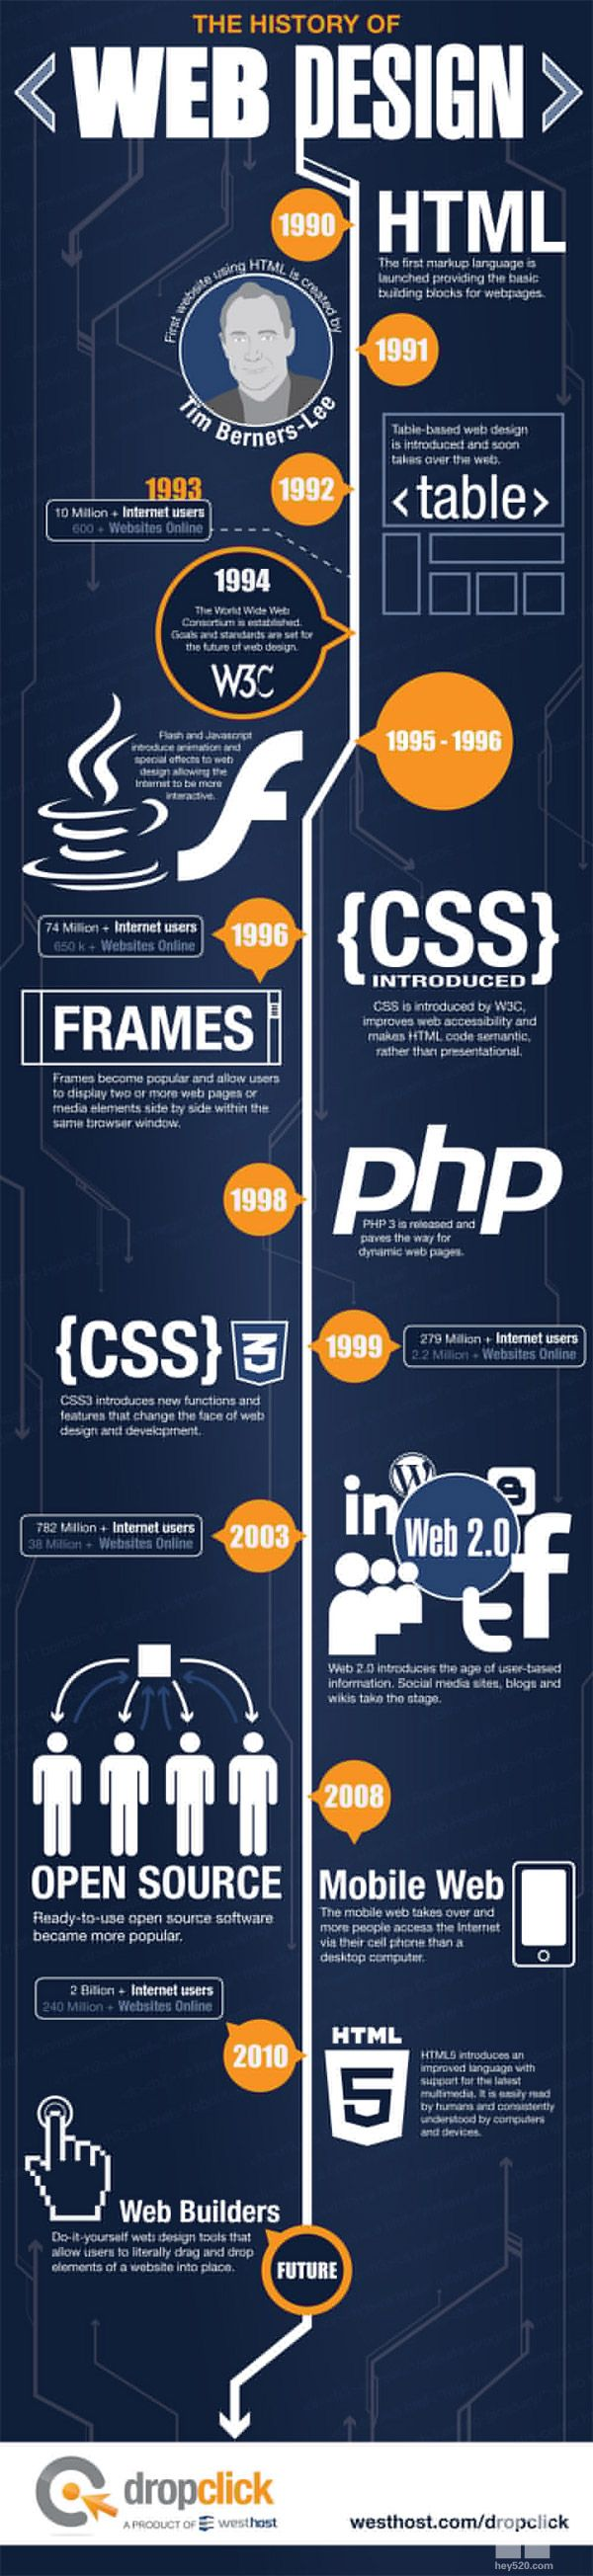 The History of Web Design by WestHost